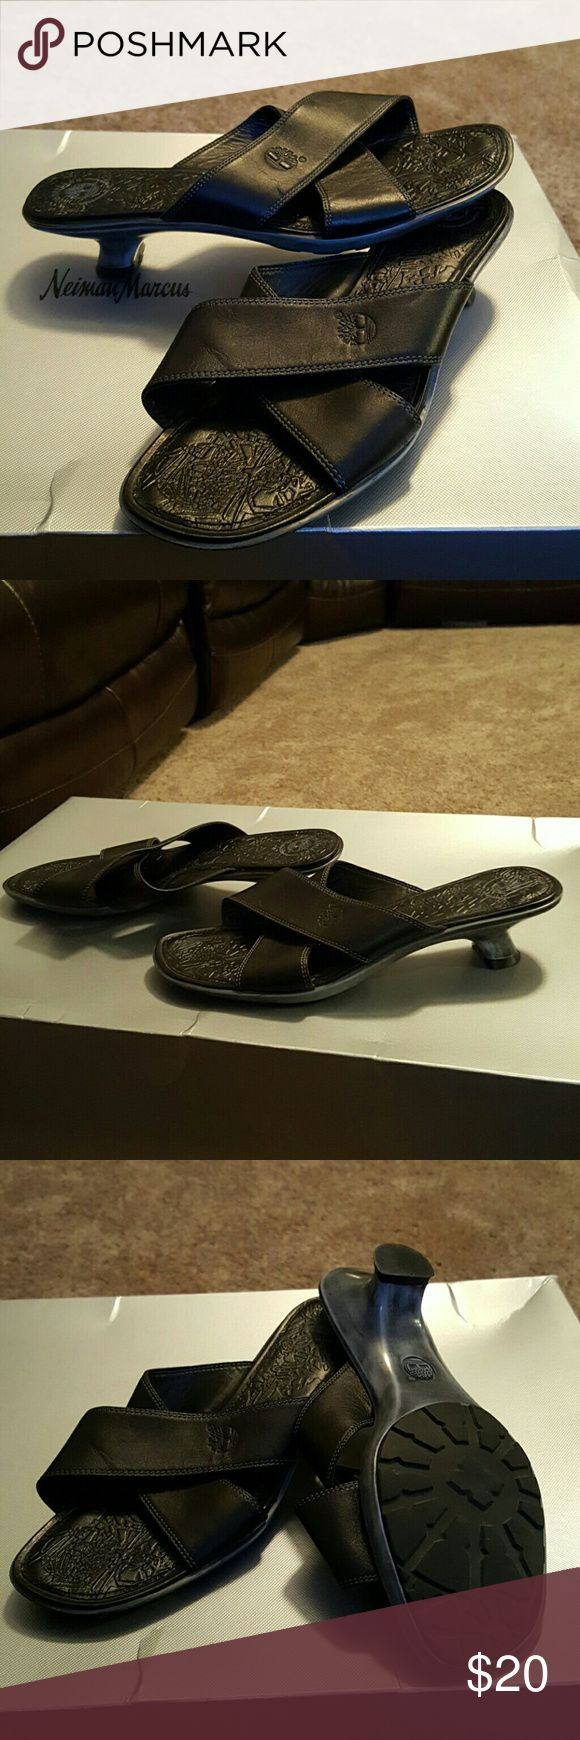 Timberland leather sandals Black and Gray Timberland sandals in great condition with leather upper.  Gray low hills. Nonslip sole. Timberland Shoes Sandals